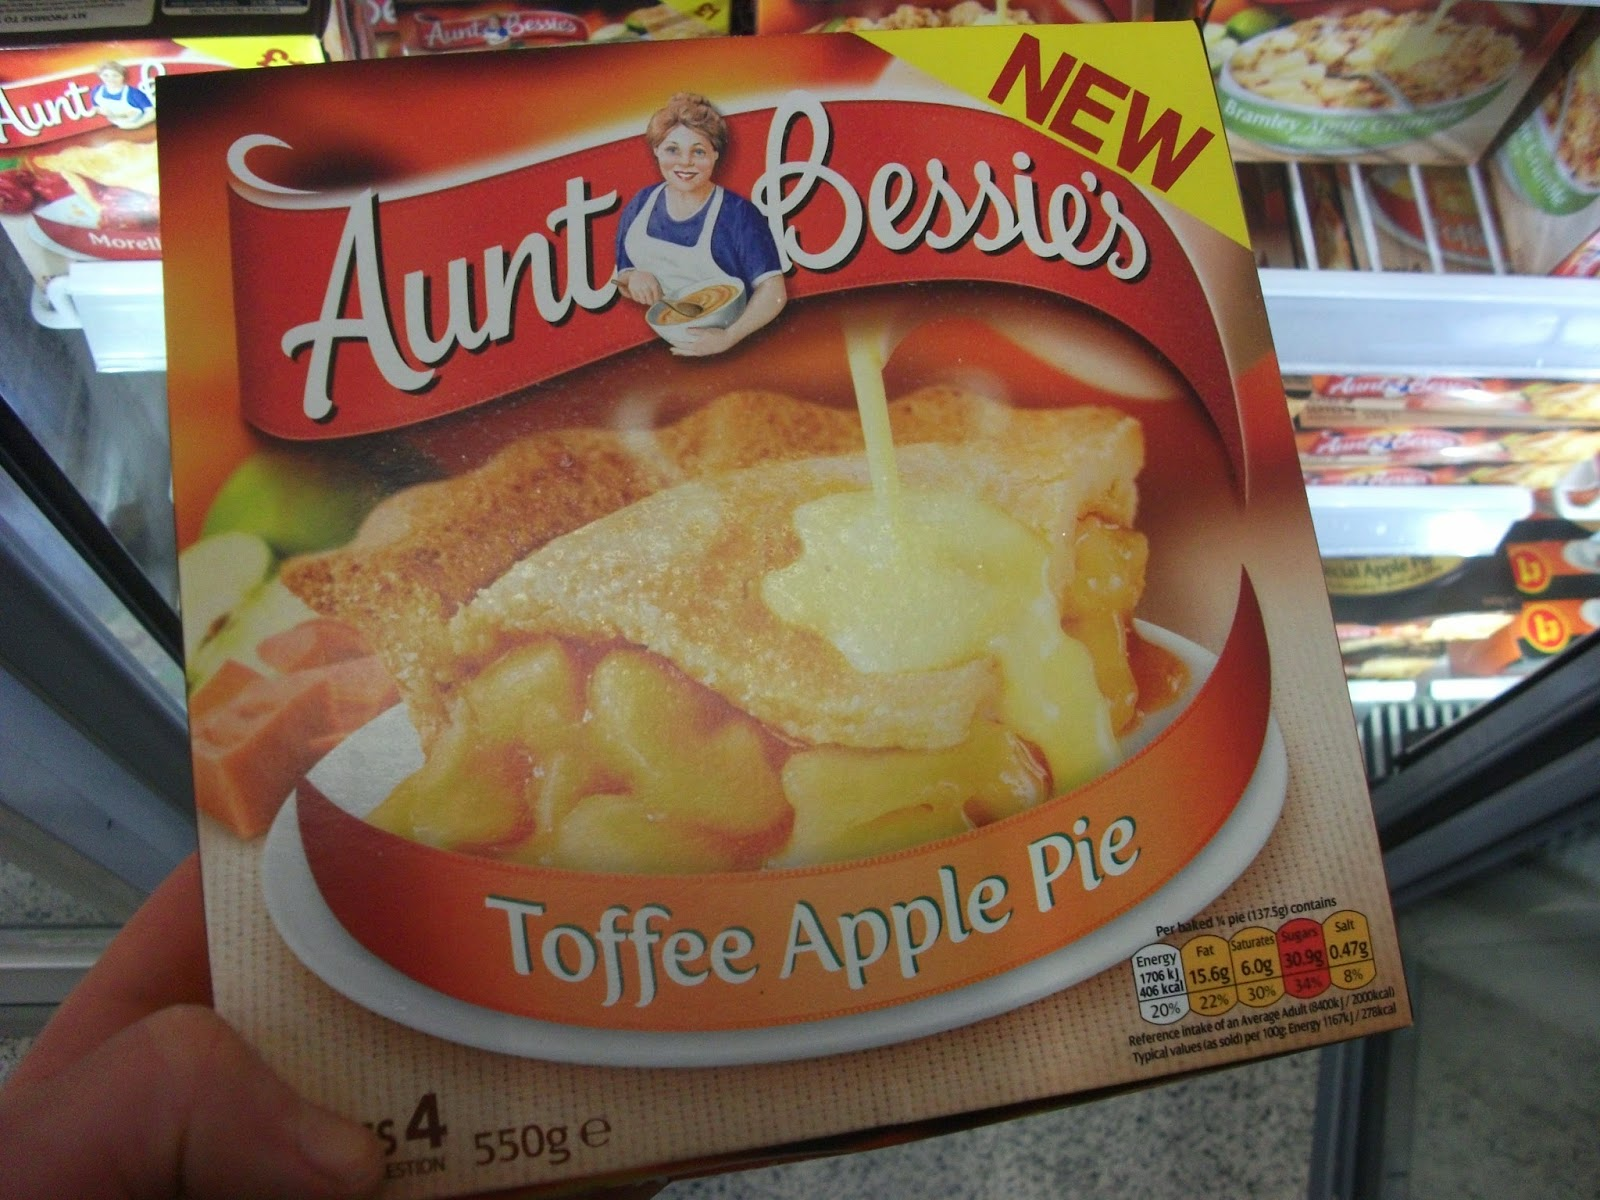 Aunt Bessie's Toffee Apple Pie : I wouldn't usually buy apple pie, I&...